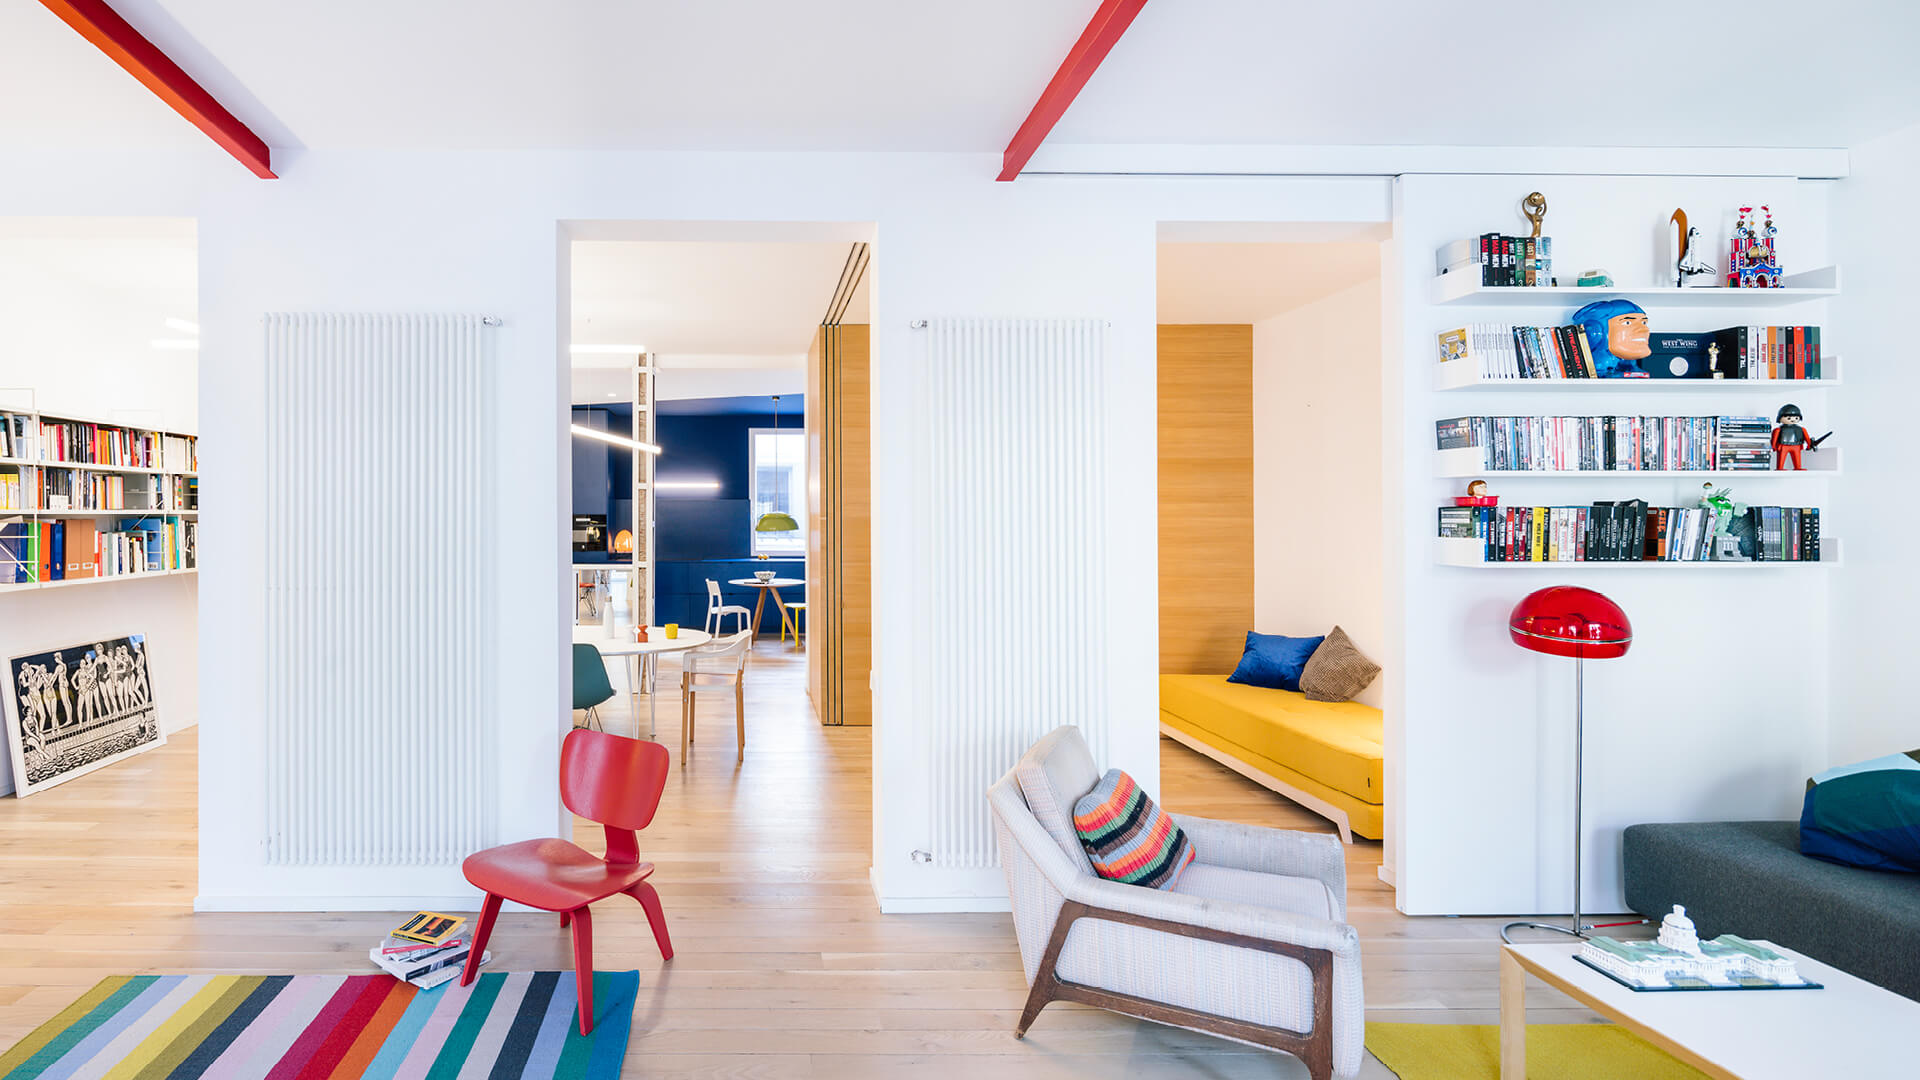 Inside Sequence House in Madrid, Spain designed by Gon Architects and Ana Torres | Sequence House by Gon Architects and Ana Torres | STIRworld